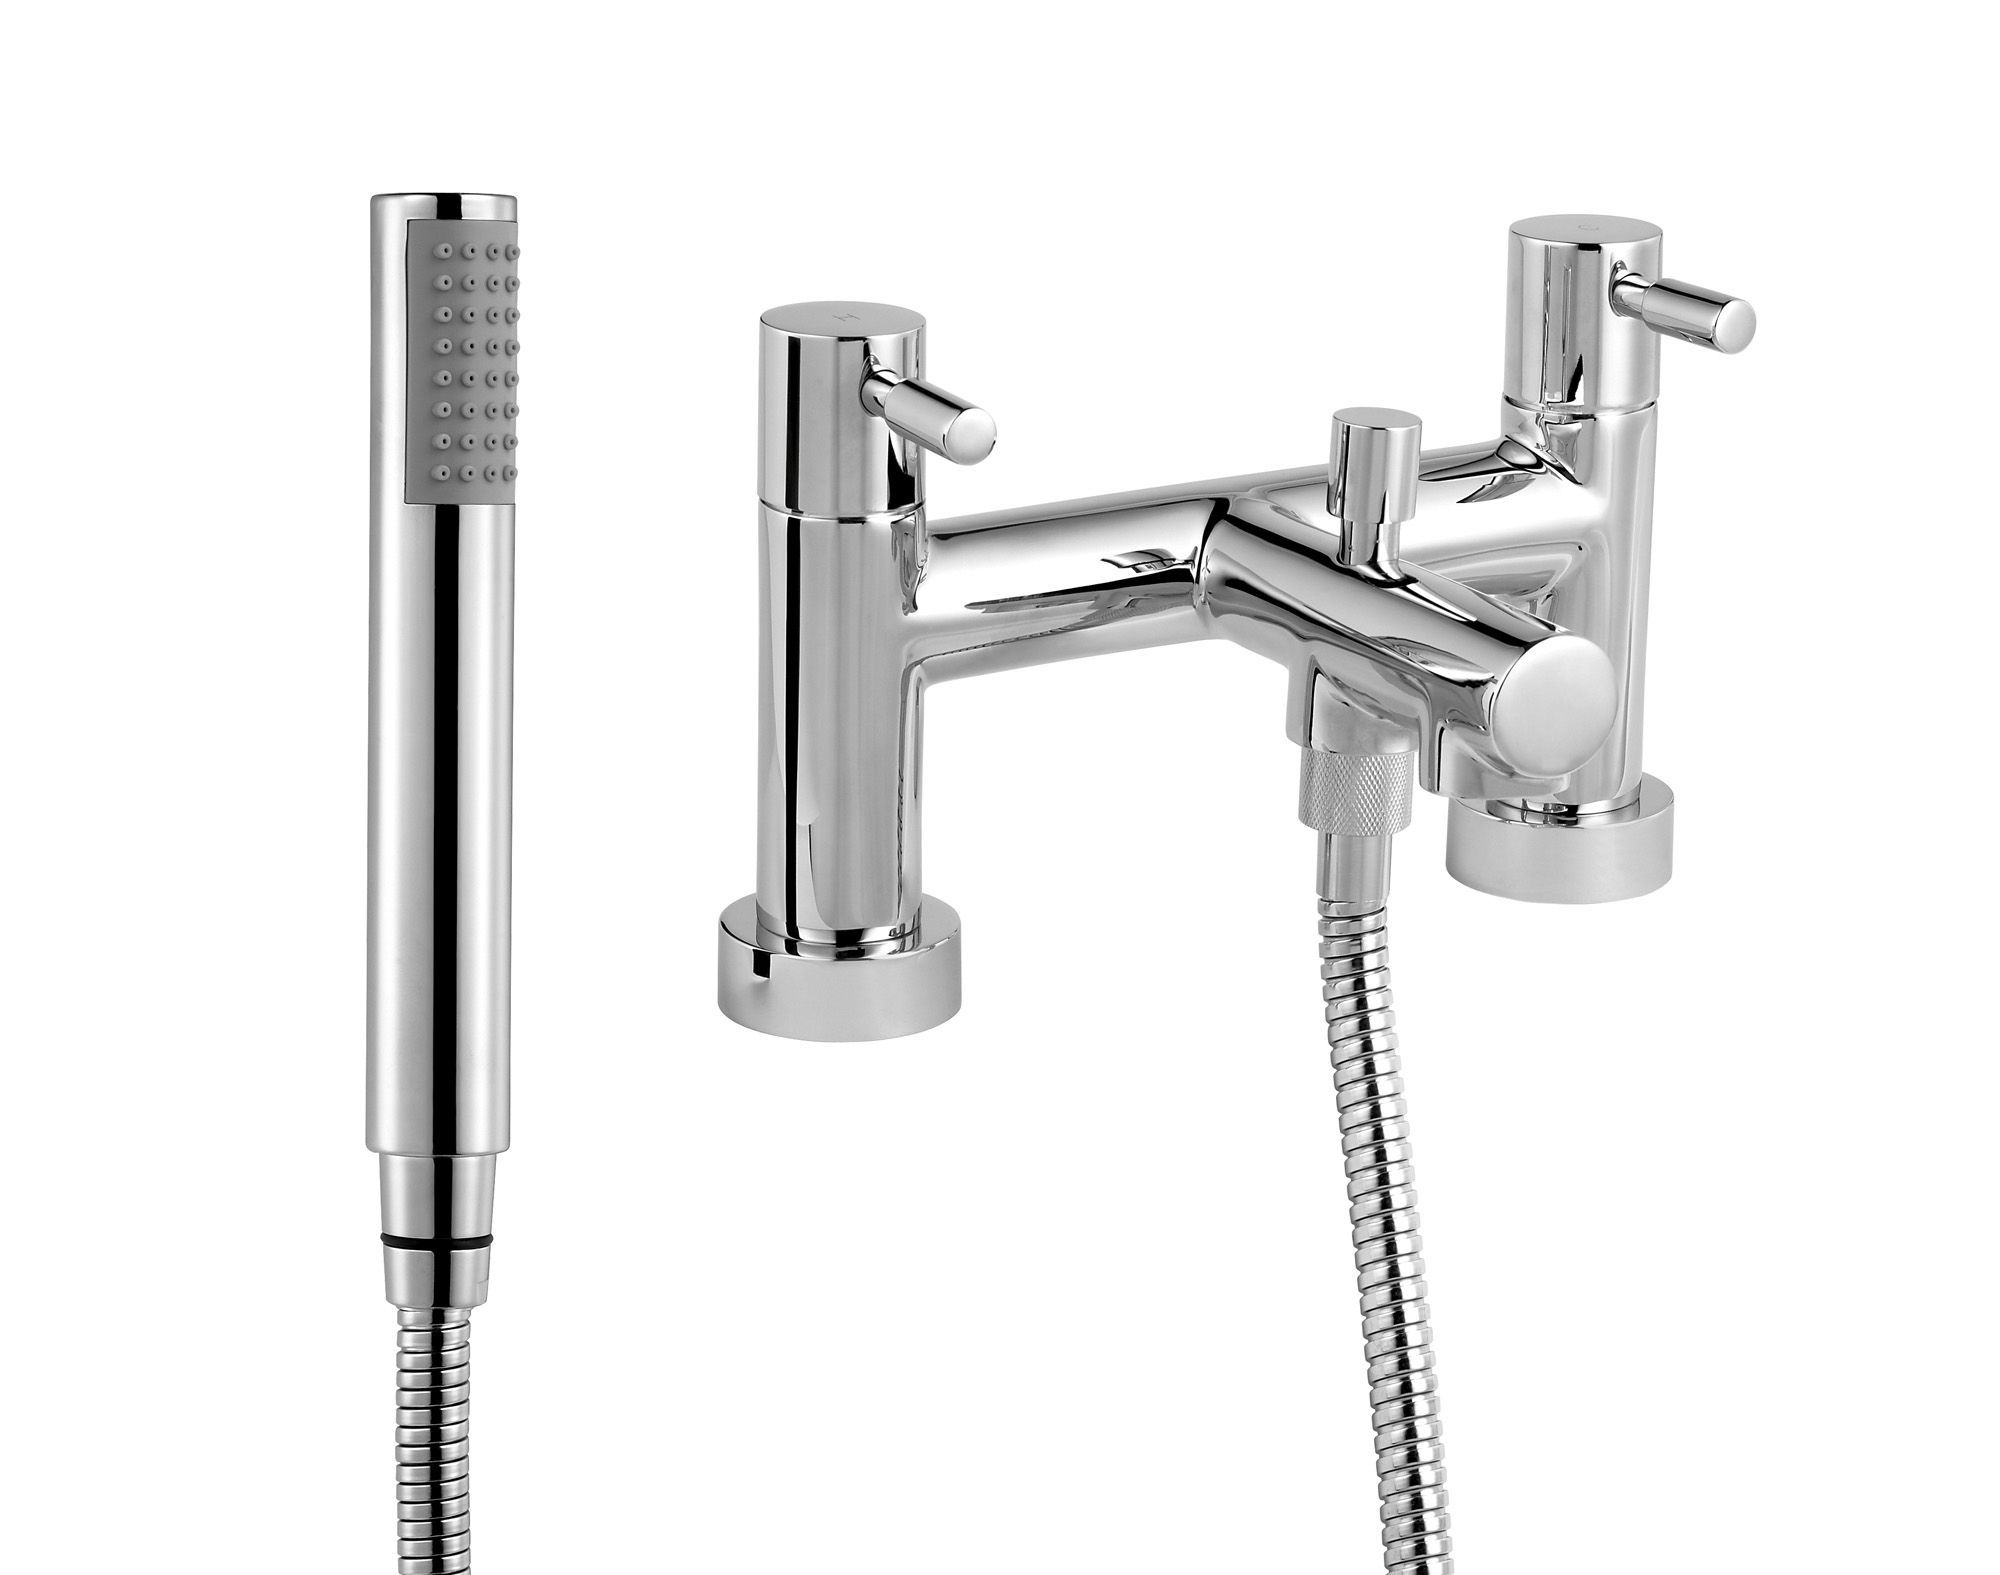 cooke lewis cirque chrome bath shower mixer tap departments cooke lewis cirque chrome bath shower mixer tap departments diy at b q